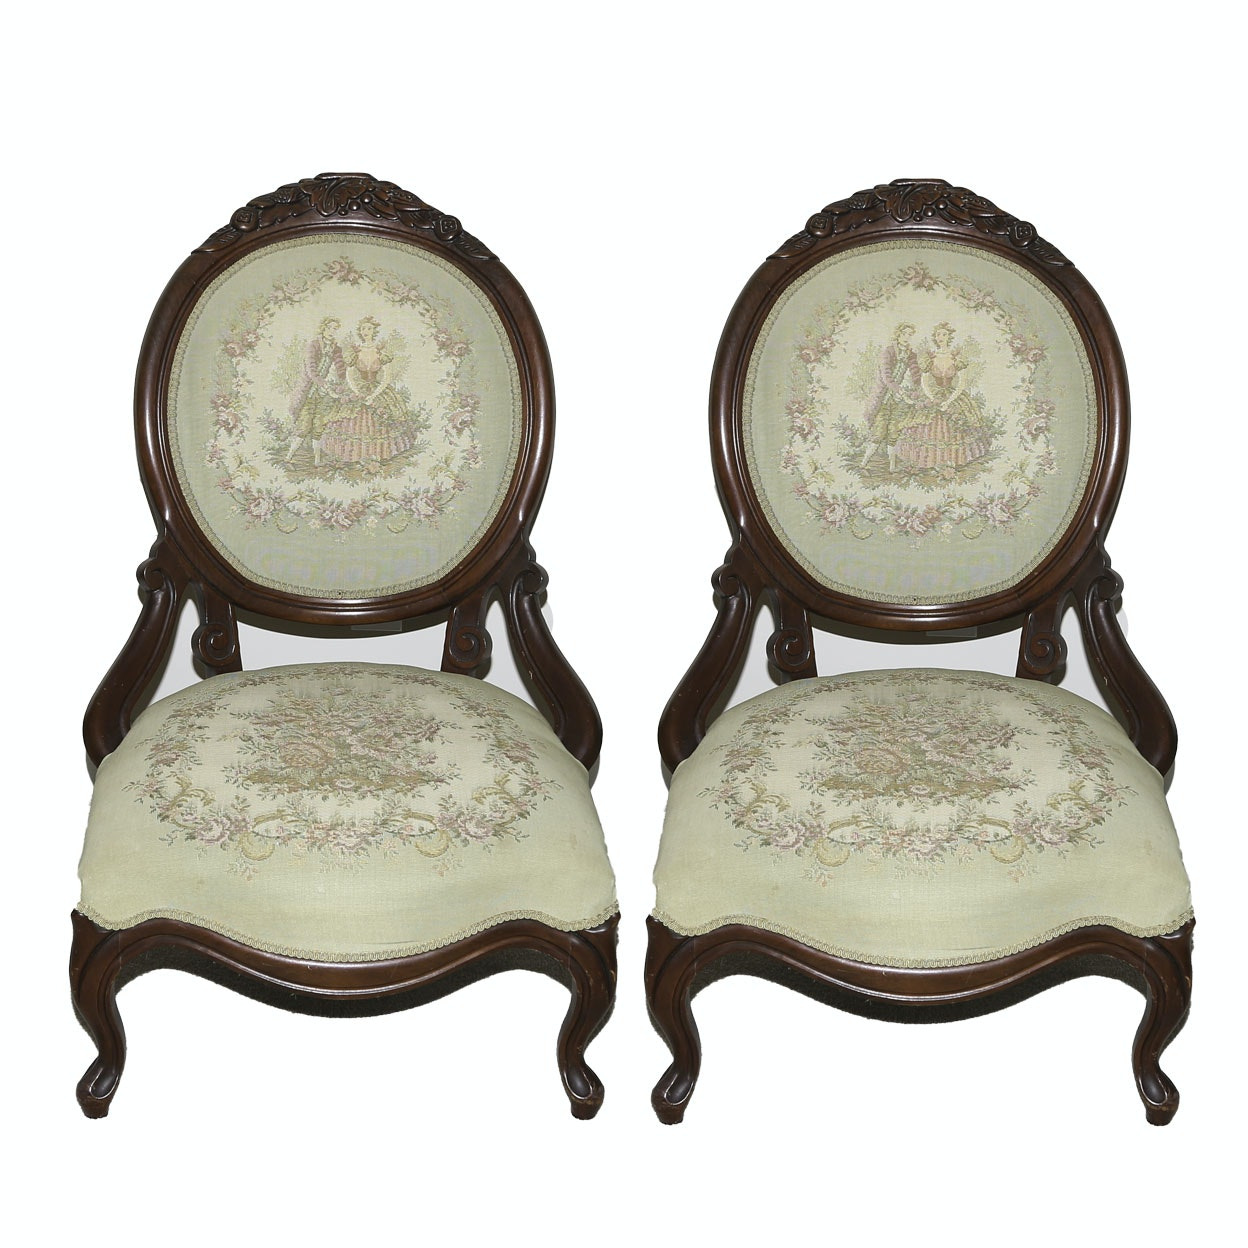 Victorian Style Upholstered Walnut Balloon Back Parlor Chairs, 20th Century